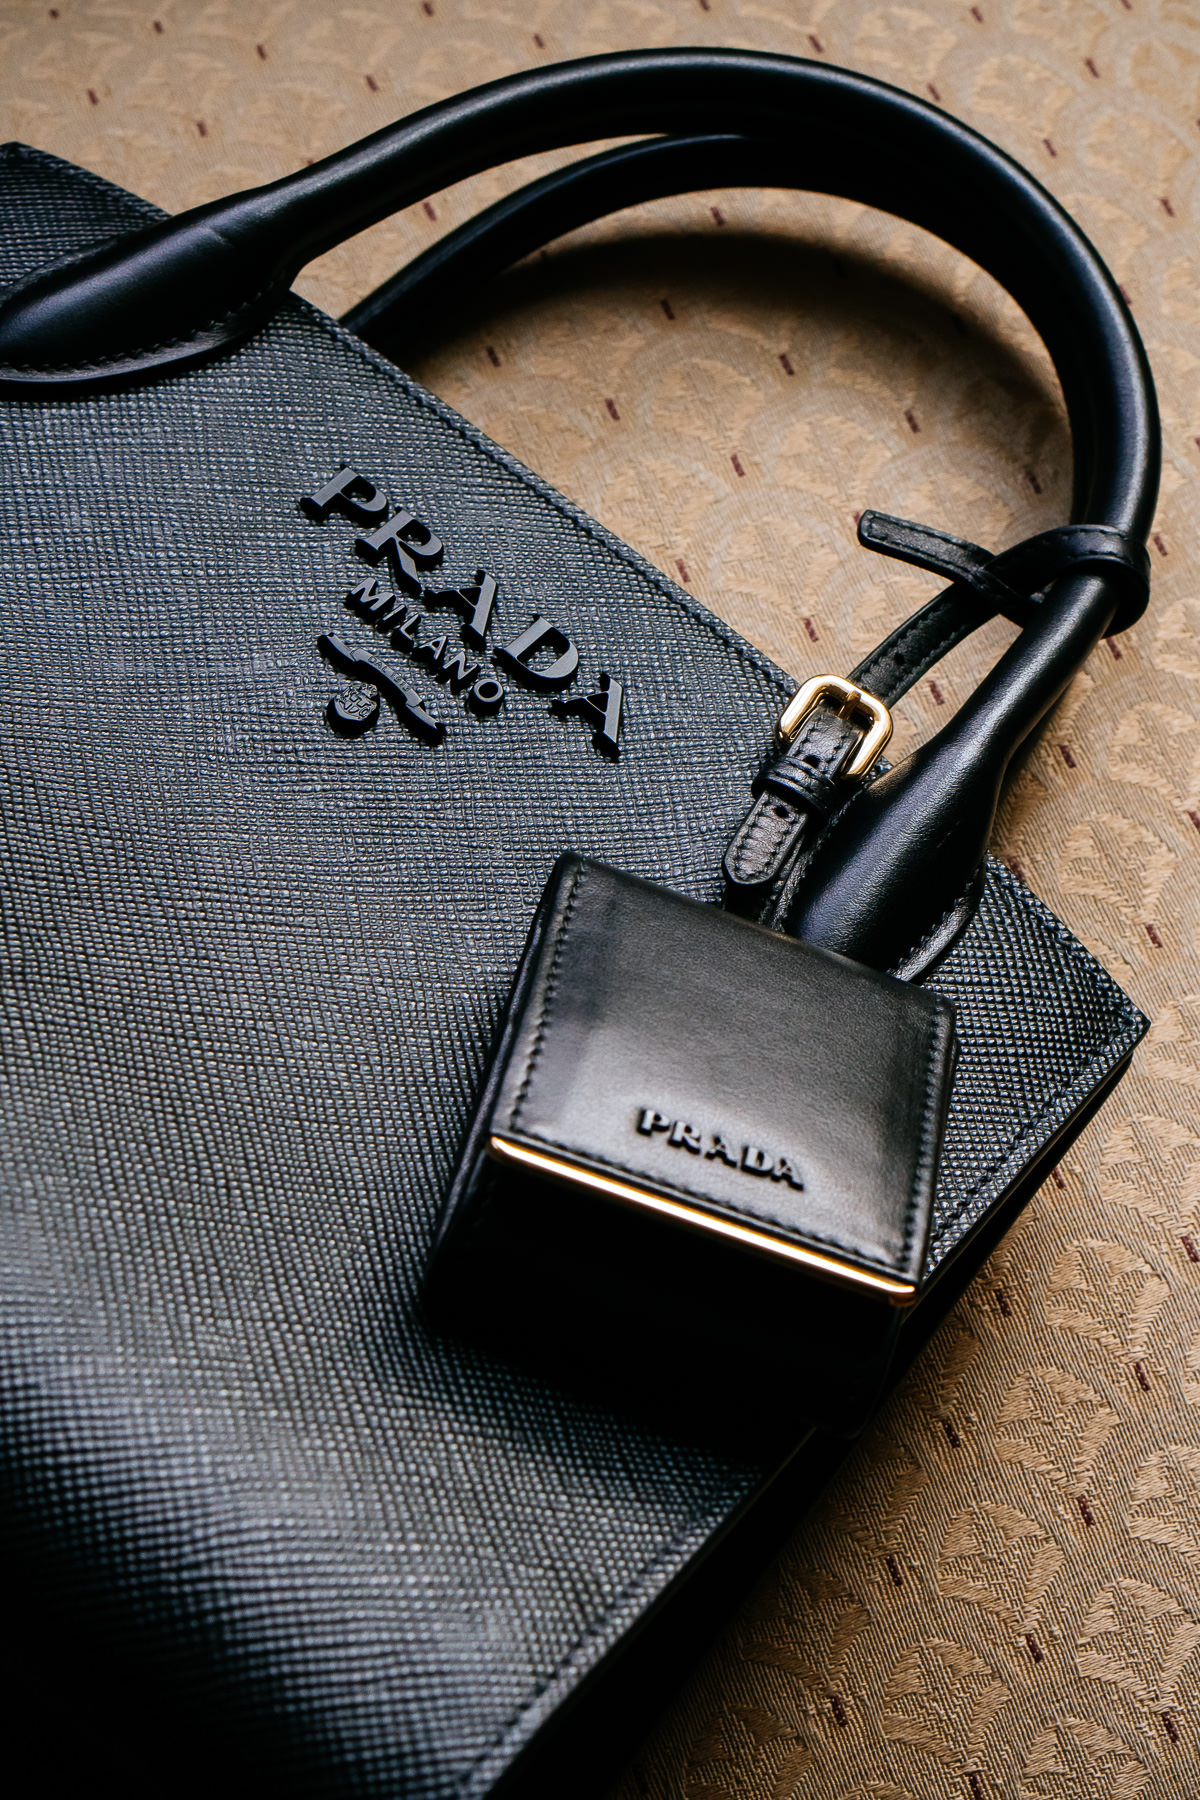 92d289ae5fe4 The monochrome bag is crafted in Prada s signature Saffiano leather and  lined with Prada s signature lining. Inside